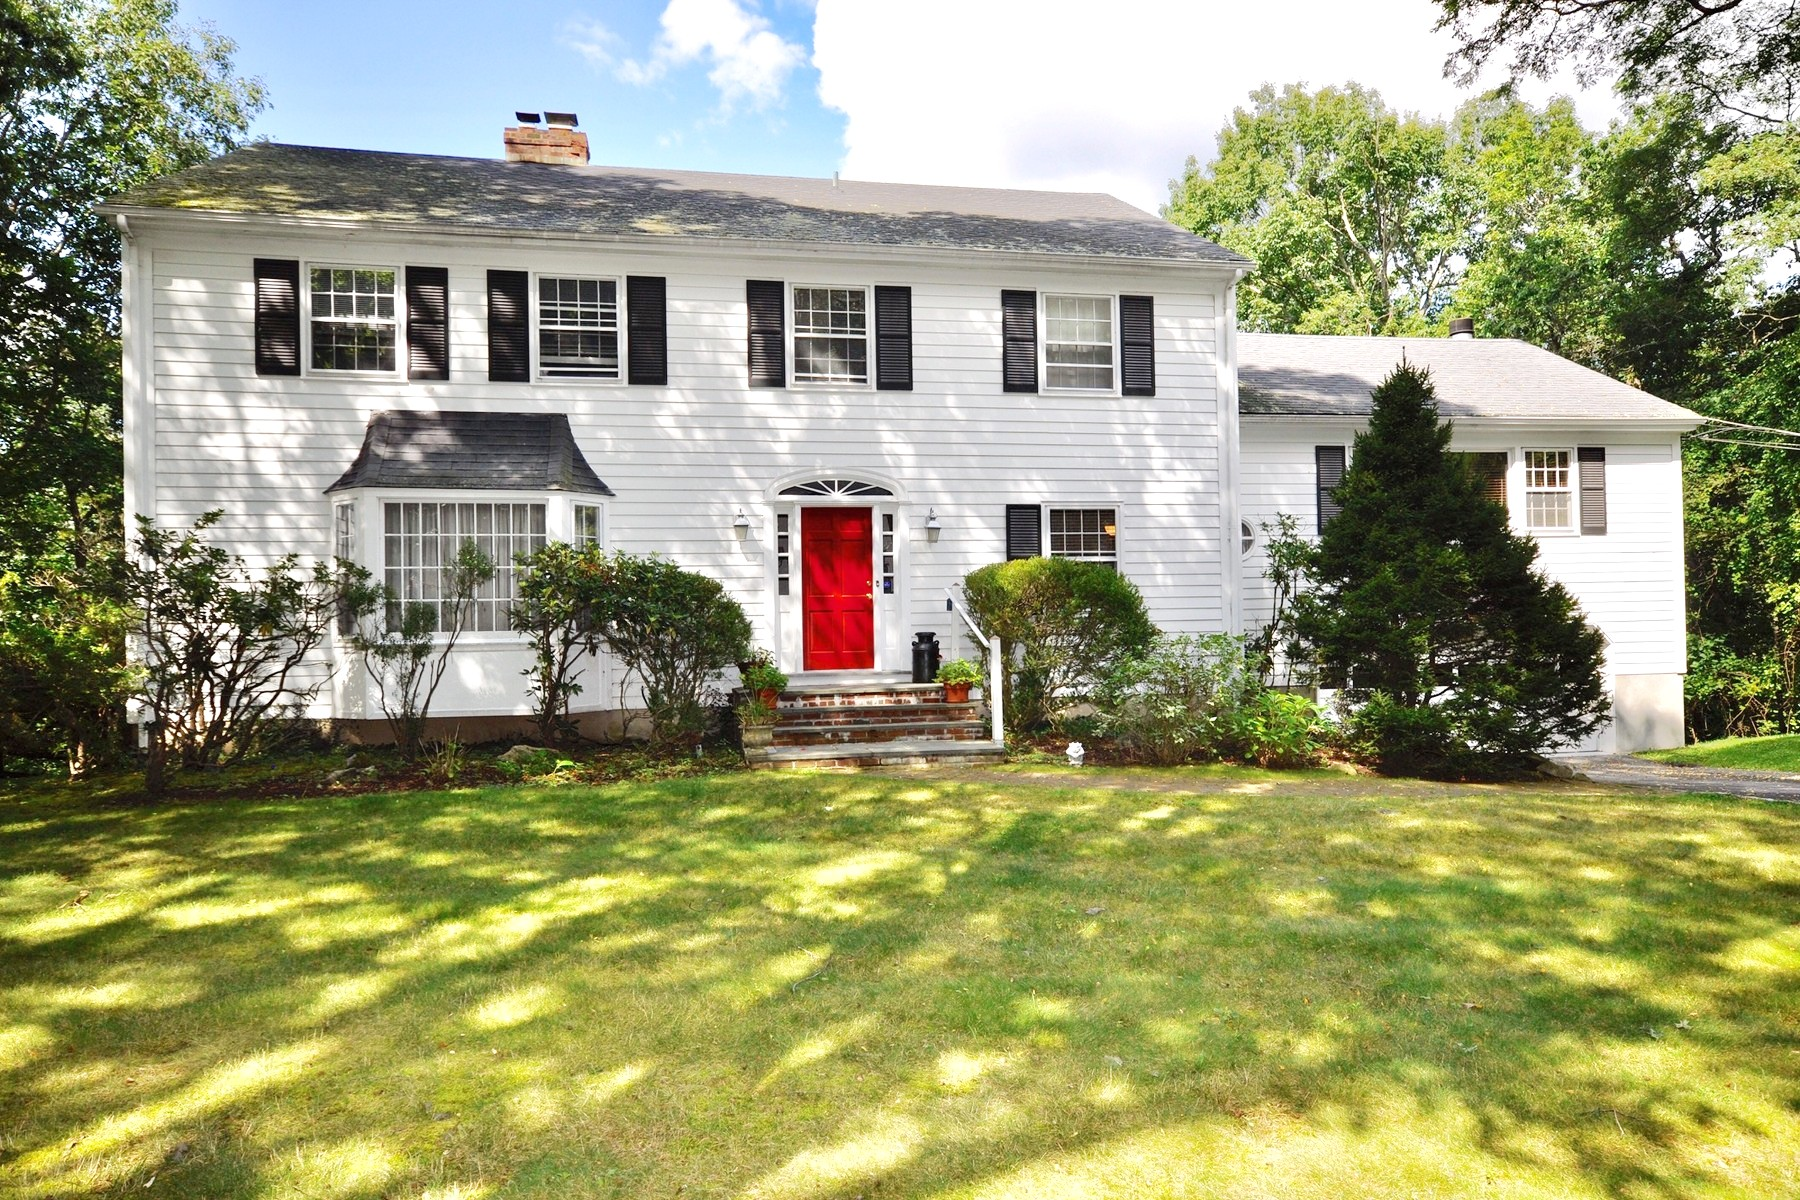 Single Family Homes for Active at Lawrence Farms East Colonial 19 Kitchel Rd Mount Kisco, New York 10549 United States